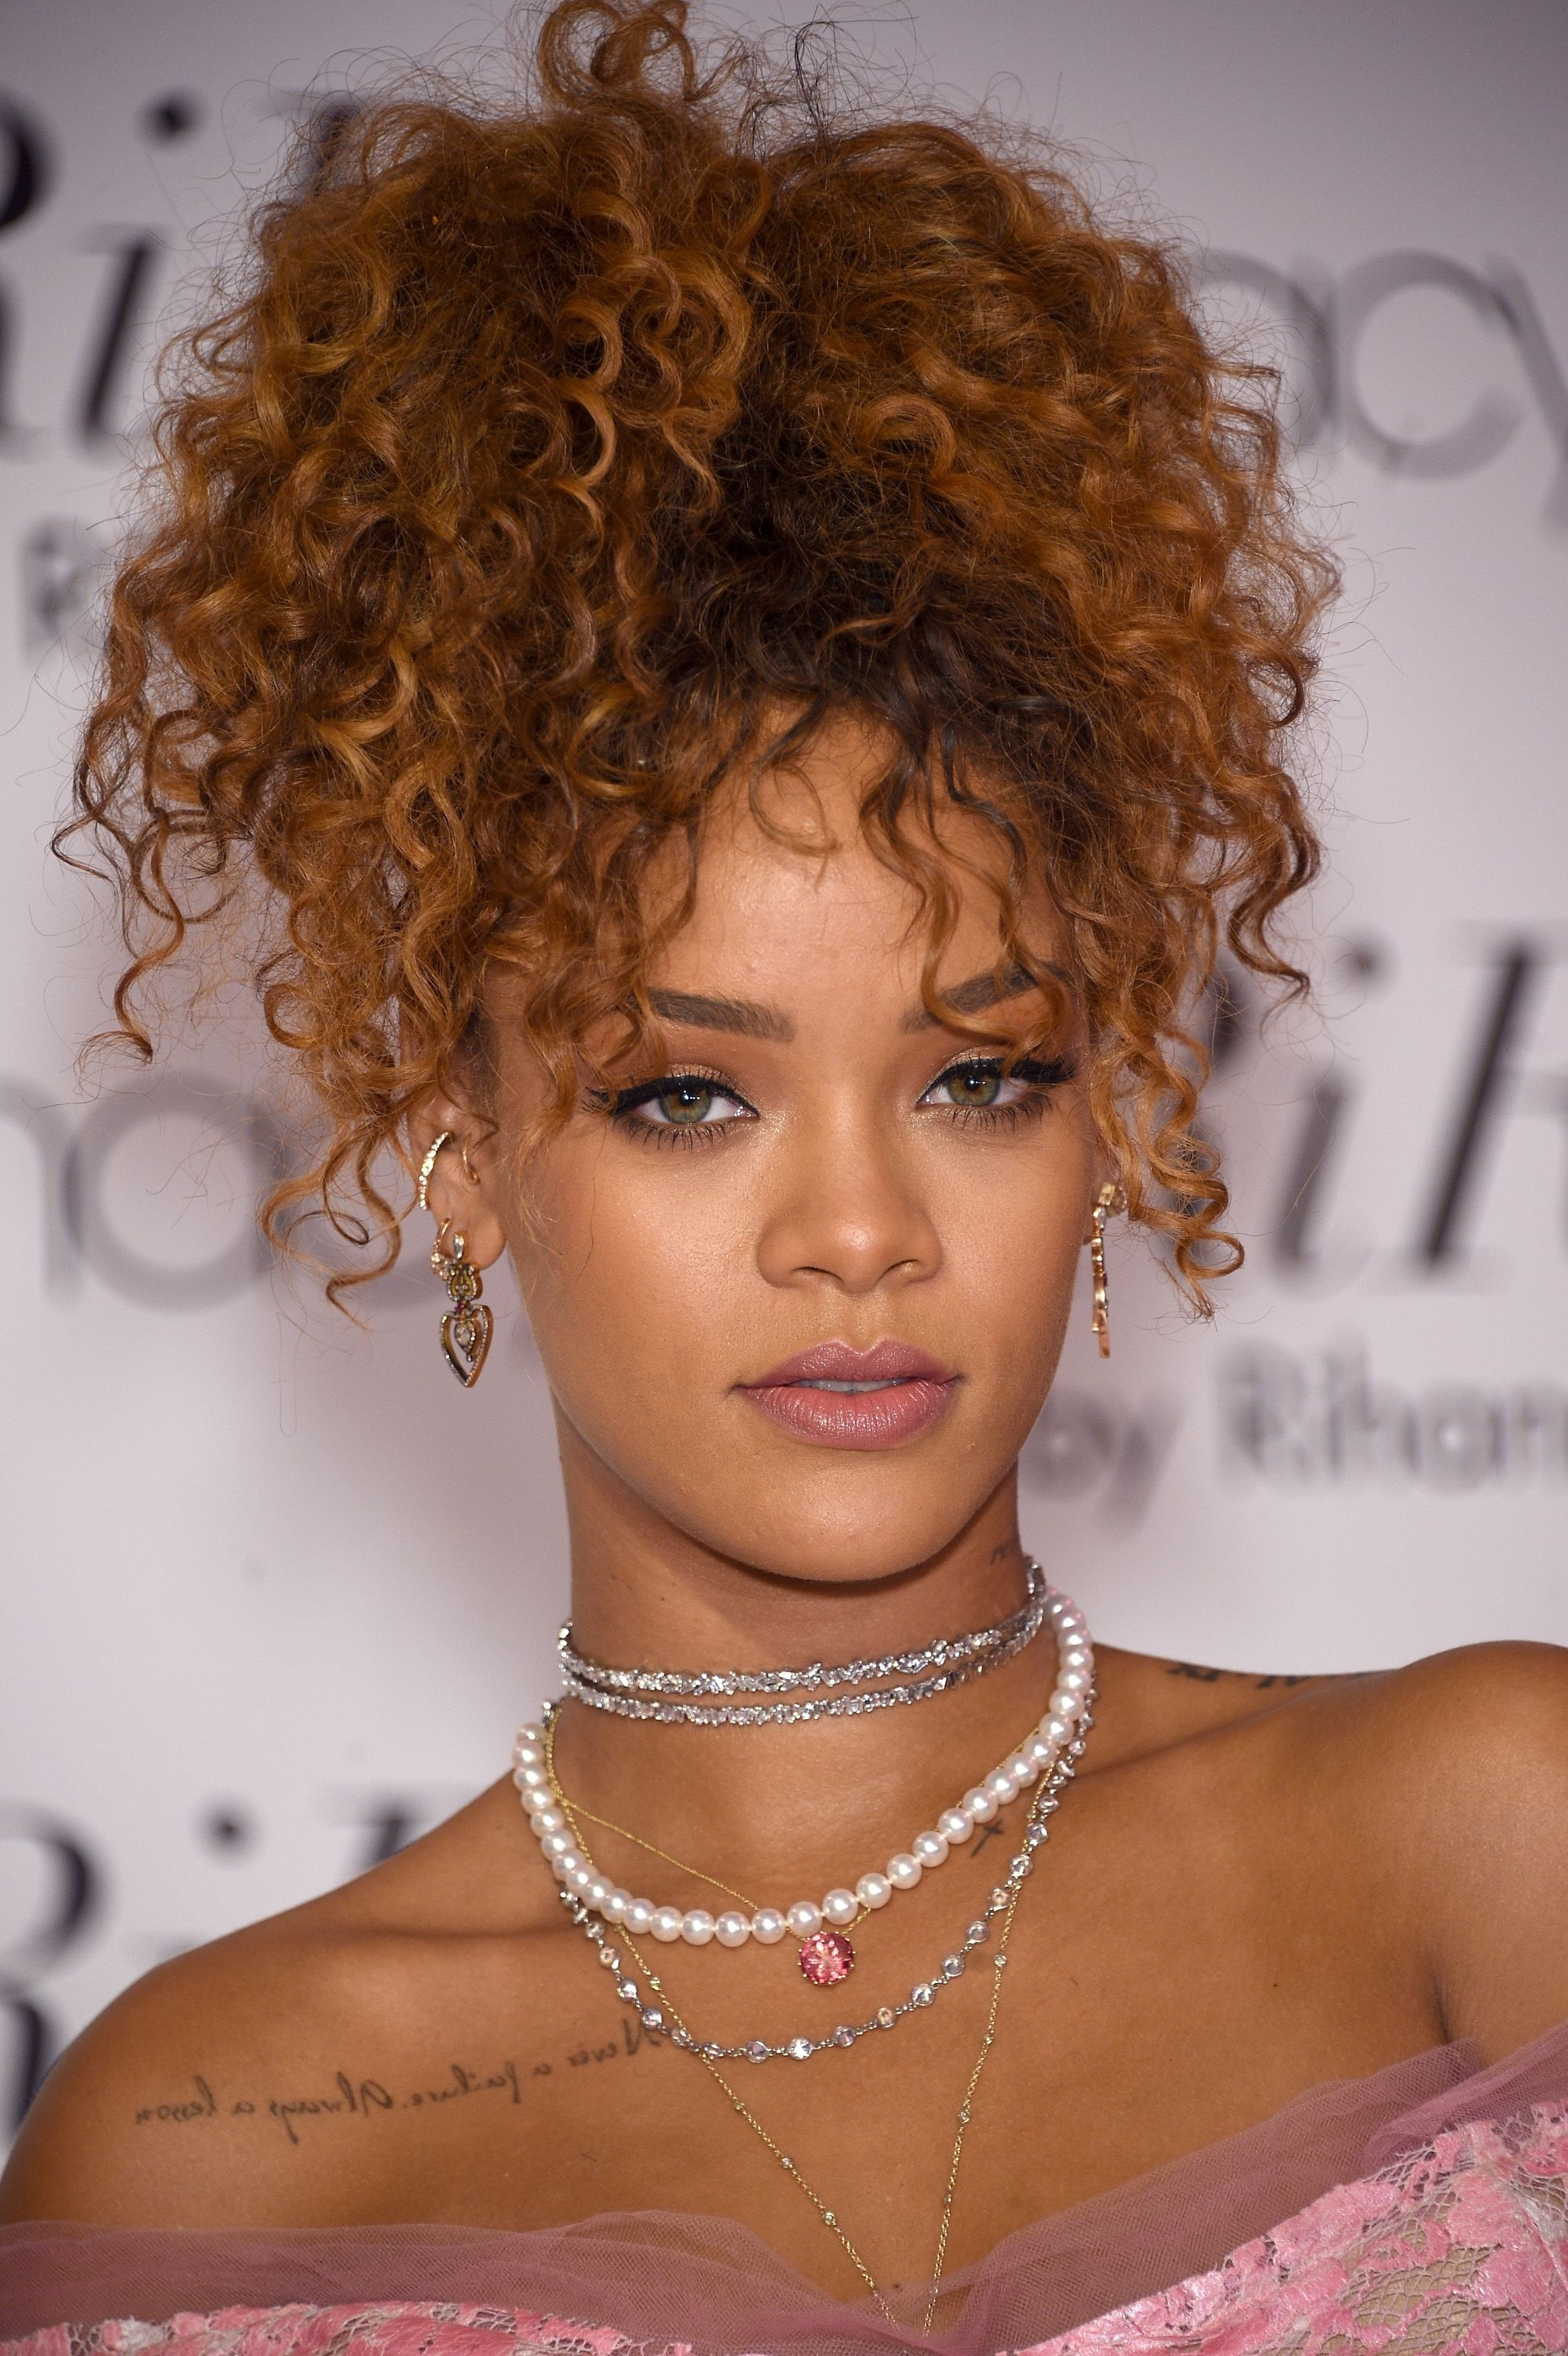 Curly Hairstyles 2018 - 40+ Styles For Every Type Of Curl with regard to Haircut For Curly Hair Female